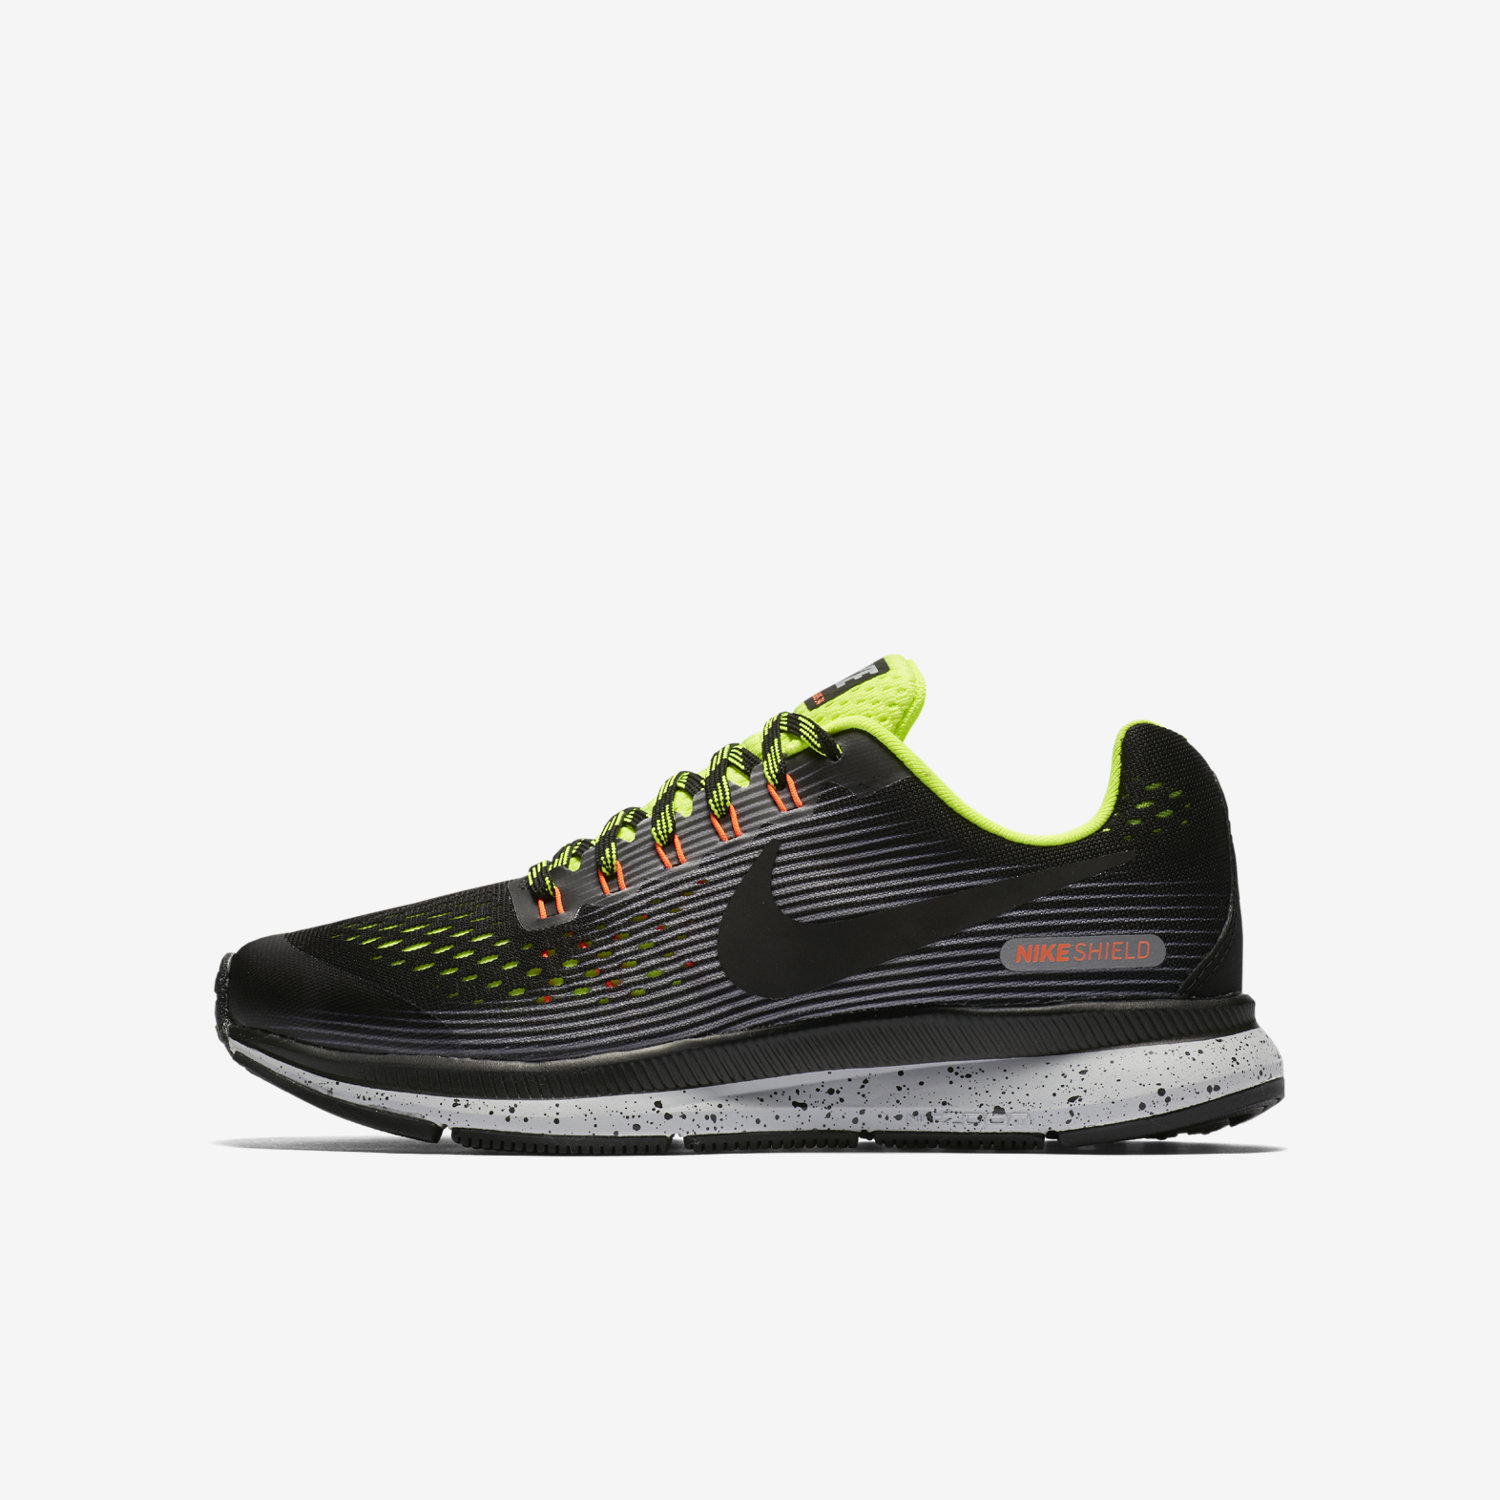 a9b535aa68ac Mens Nike Casual Shoes Lifestyle Running nike pegasus shield. Nike Air  Pegasus+ 30 Shield Dark Loden Black Volt